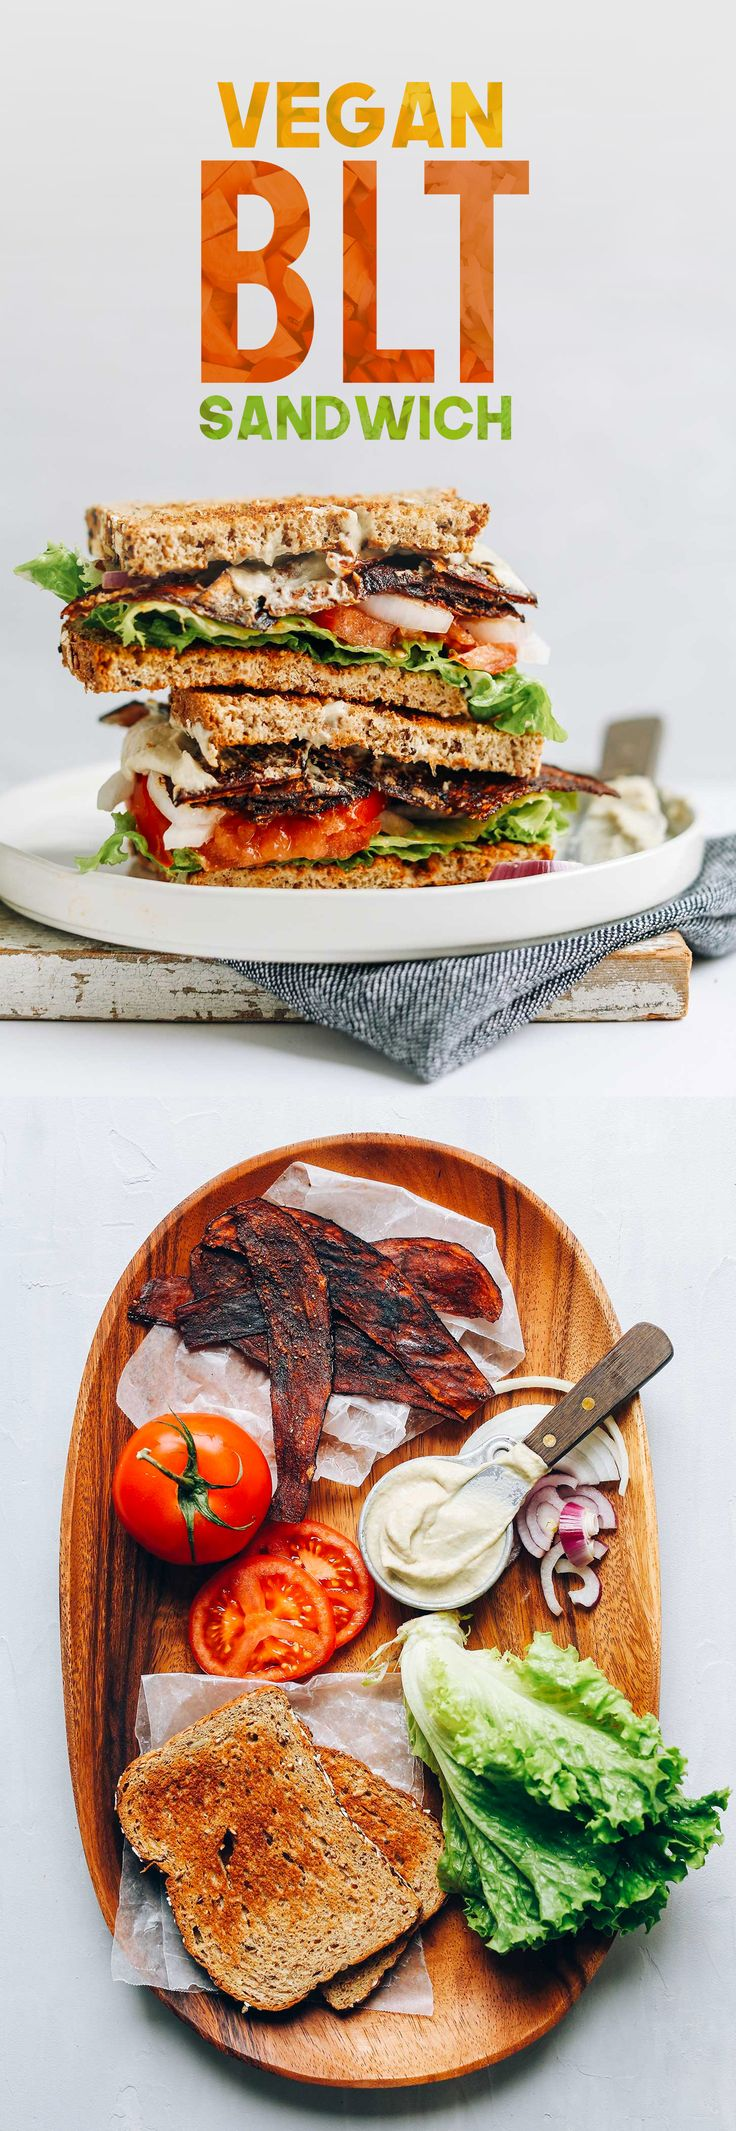 """6-Ingredient vegan """"BLT"""" sandwich made with vegan mayo and eggplant bacon"""